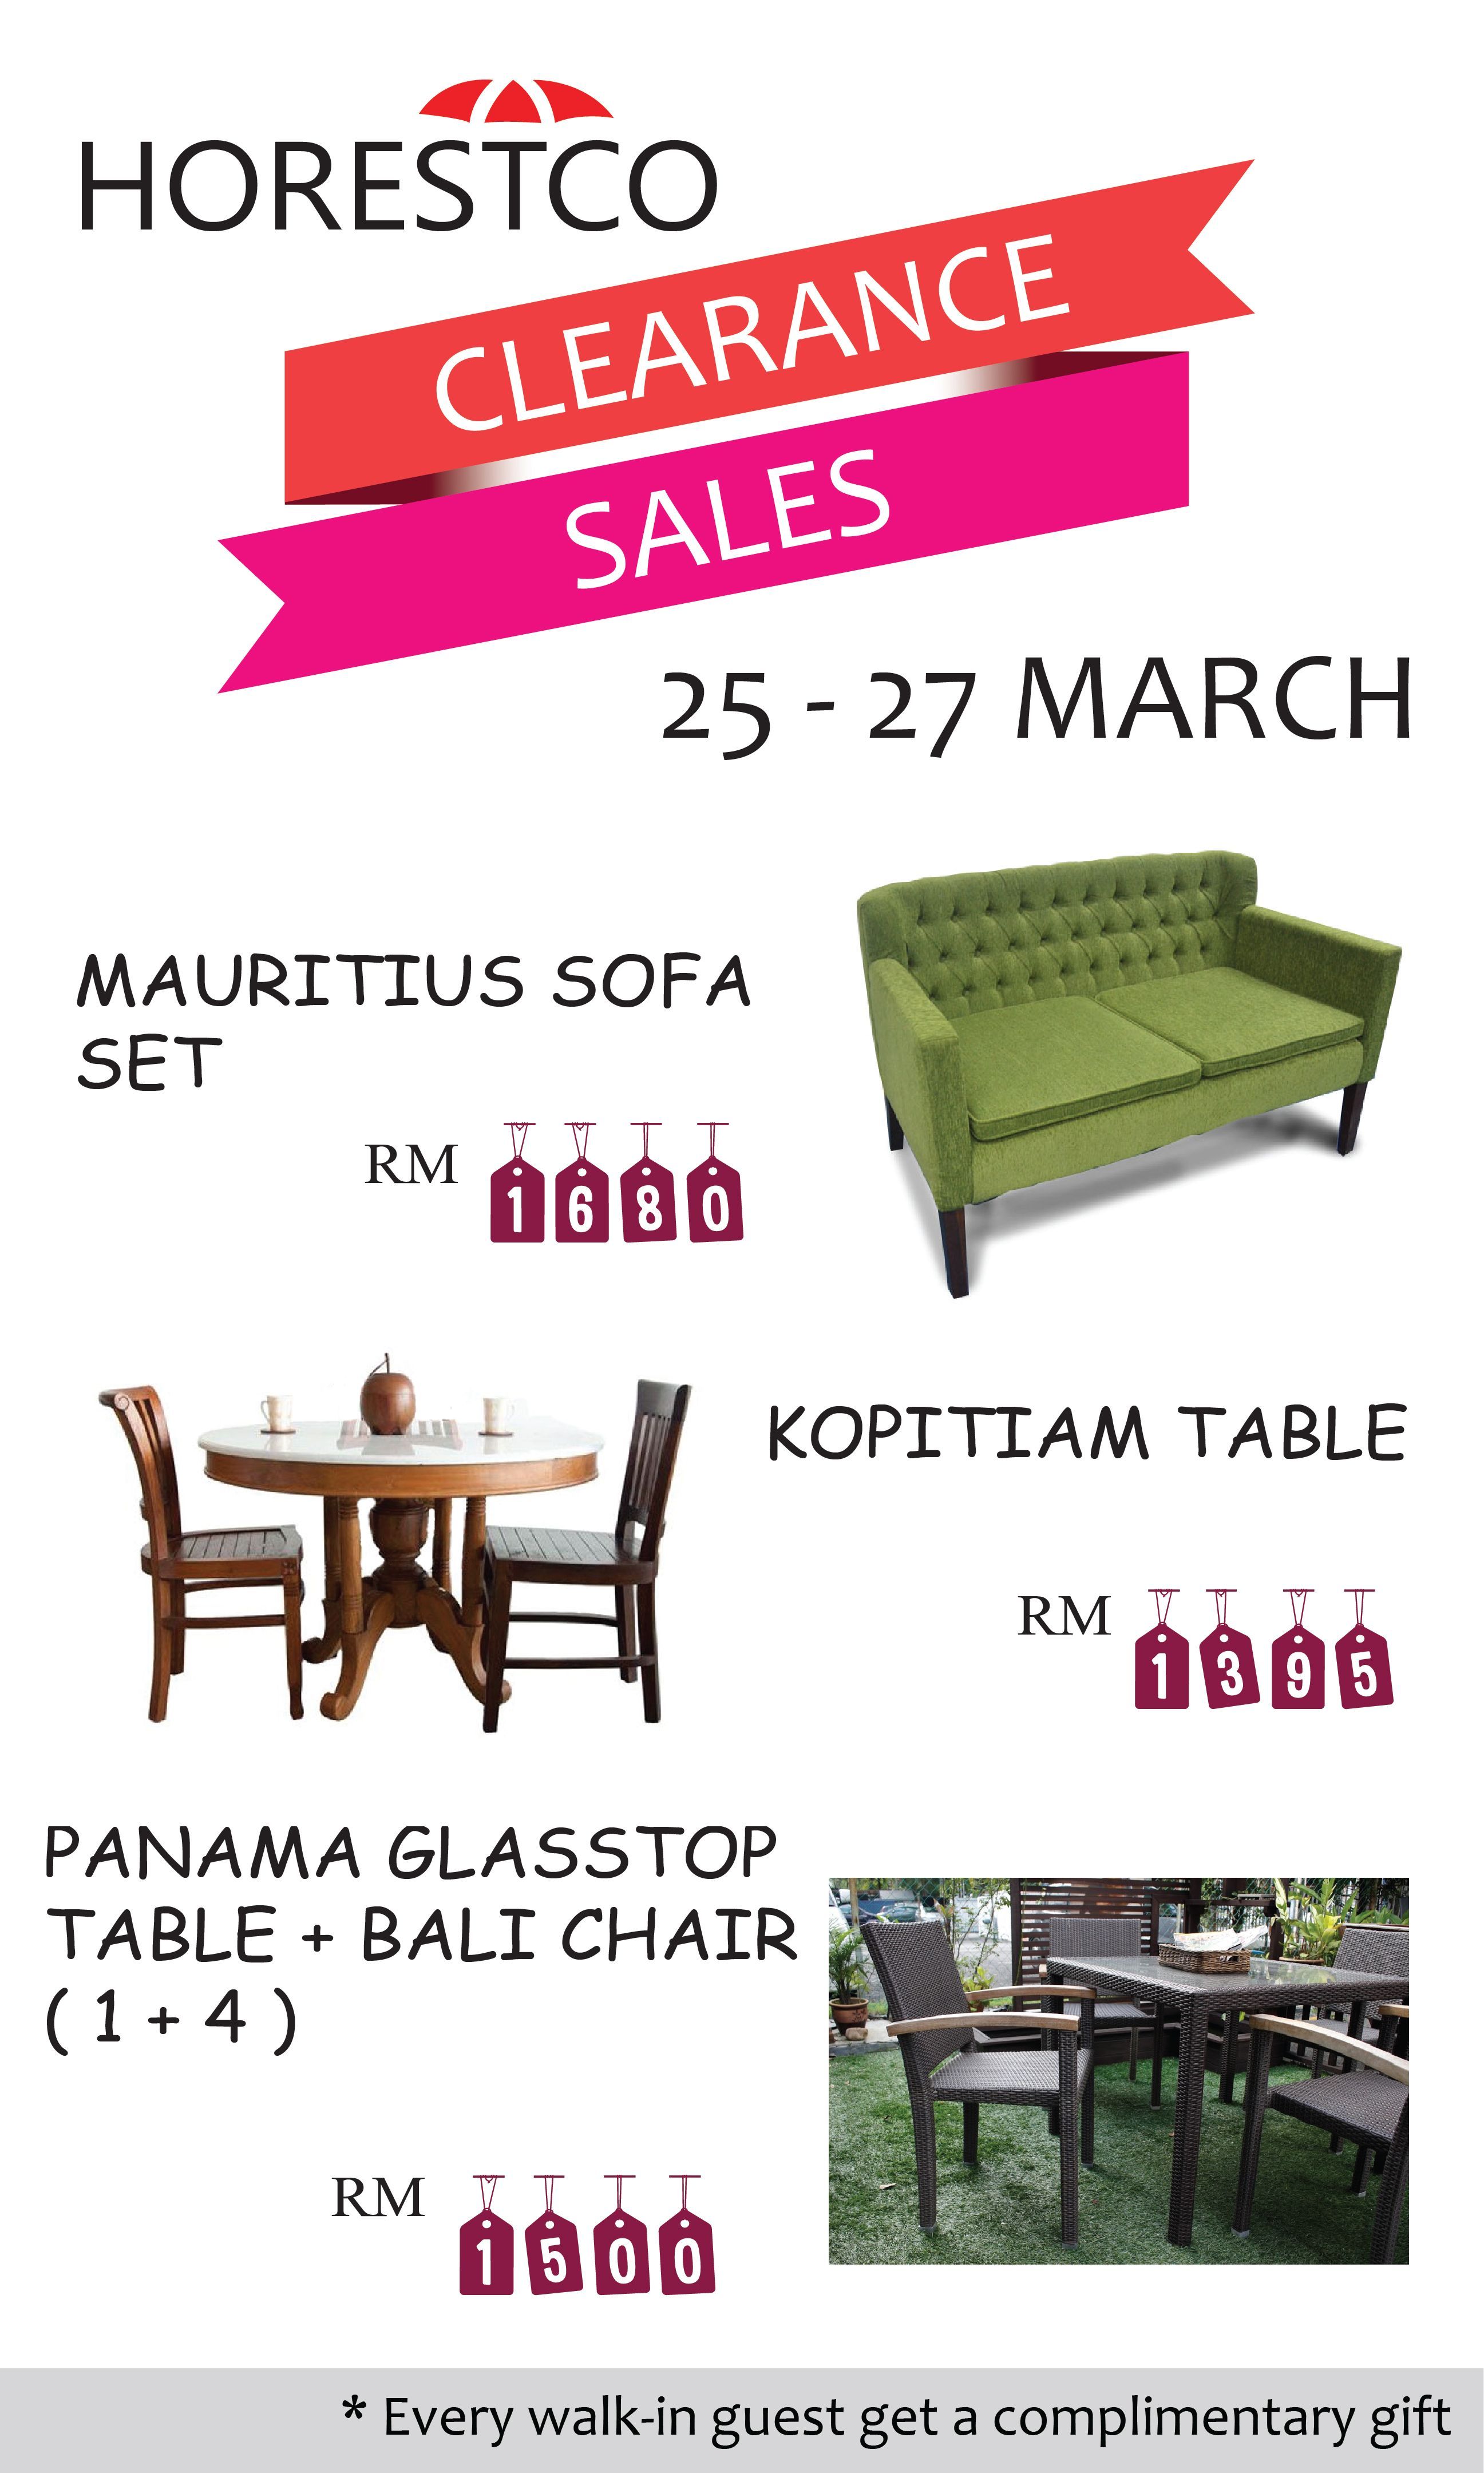 Horestco Clearance Sale For Furniture Discounts In Malaysia